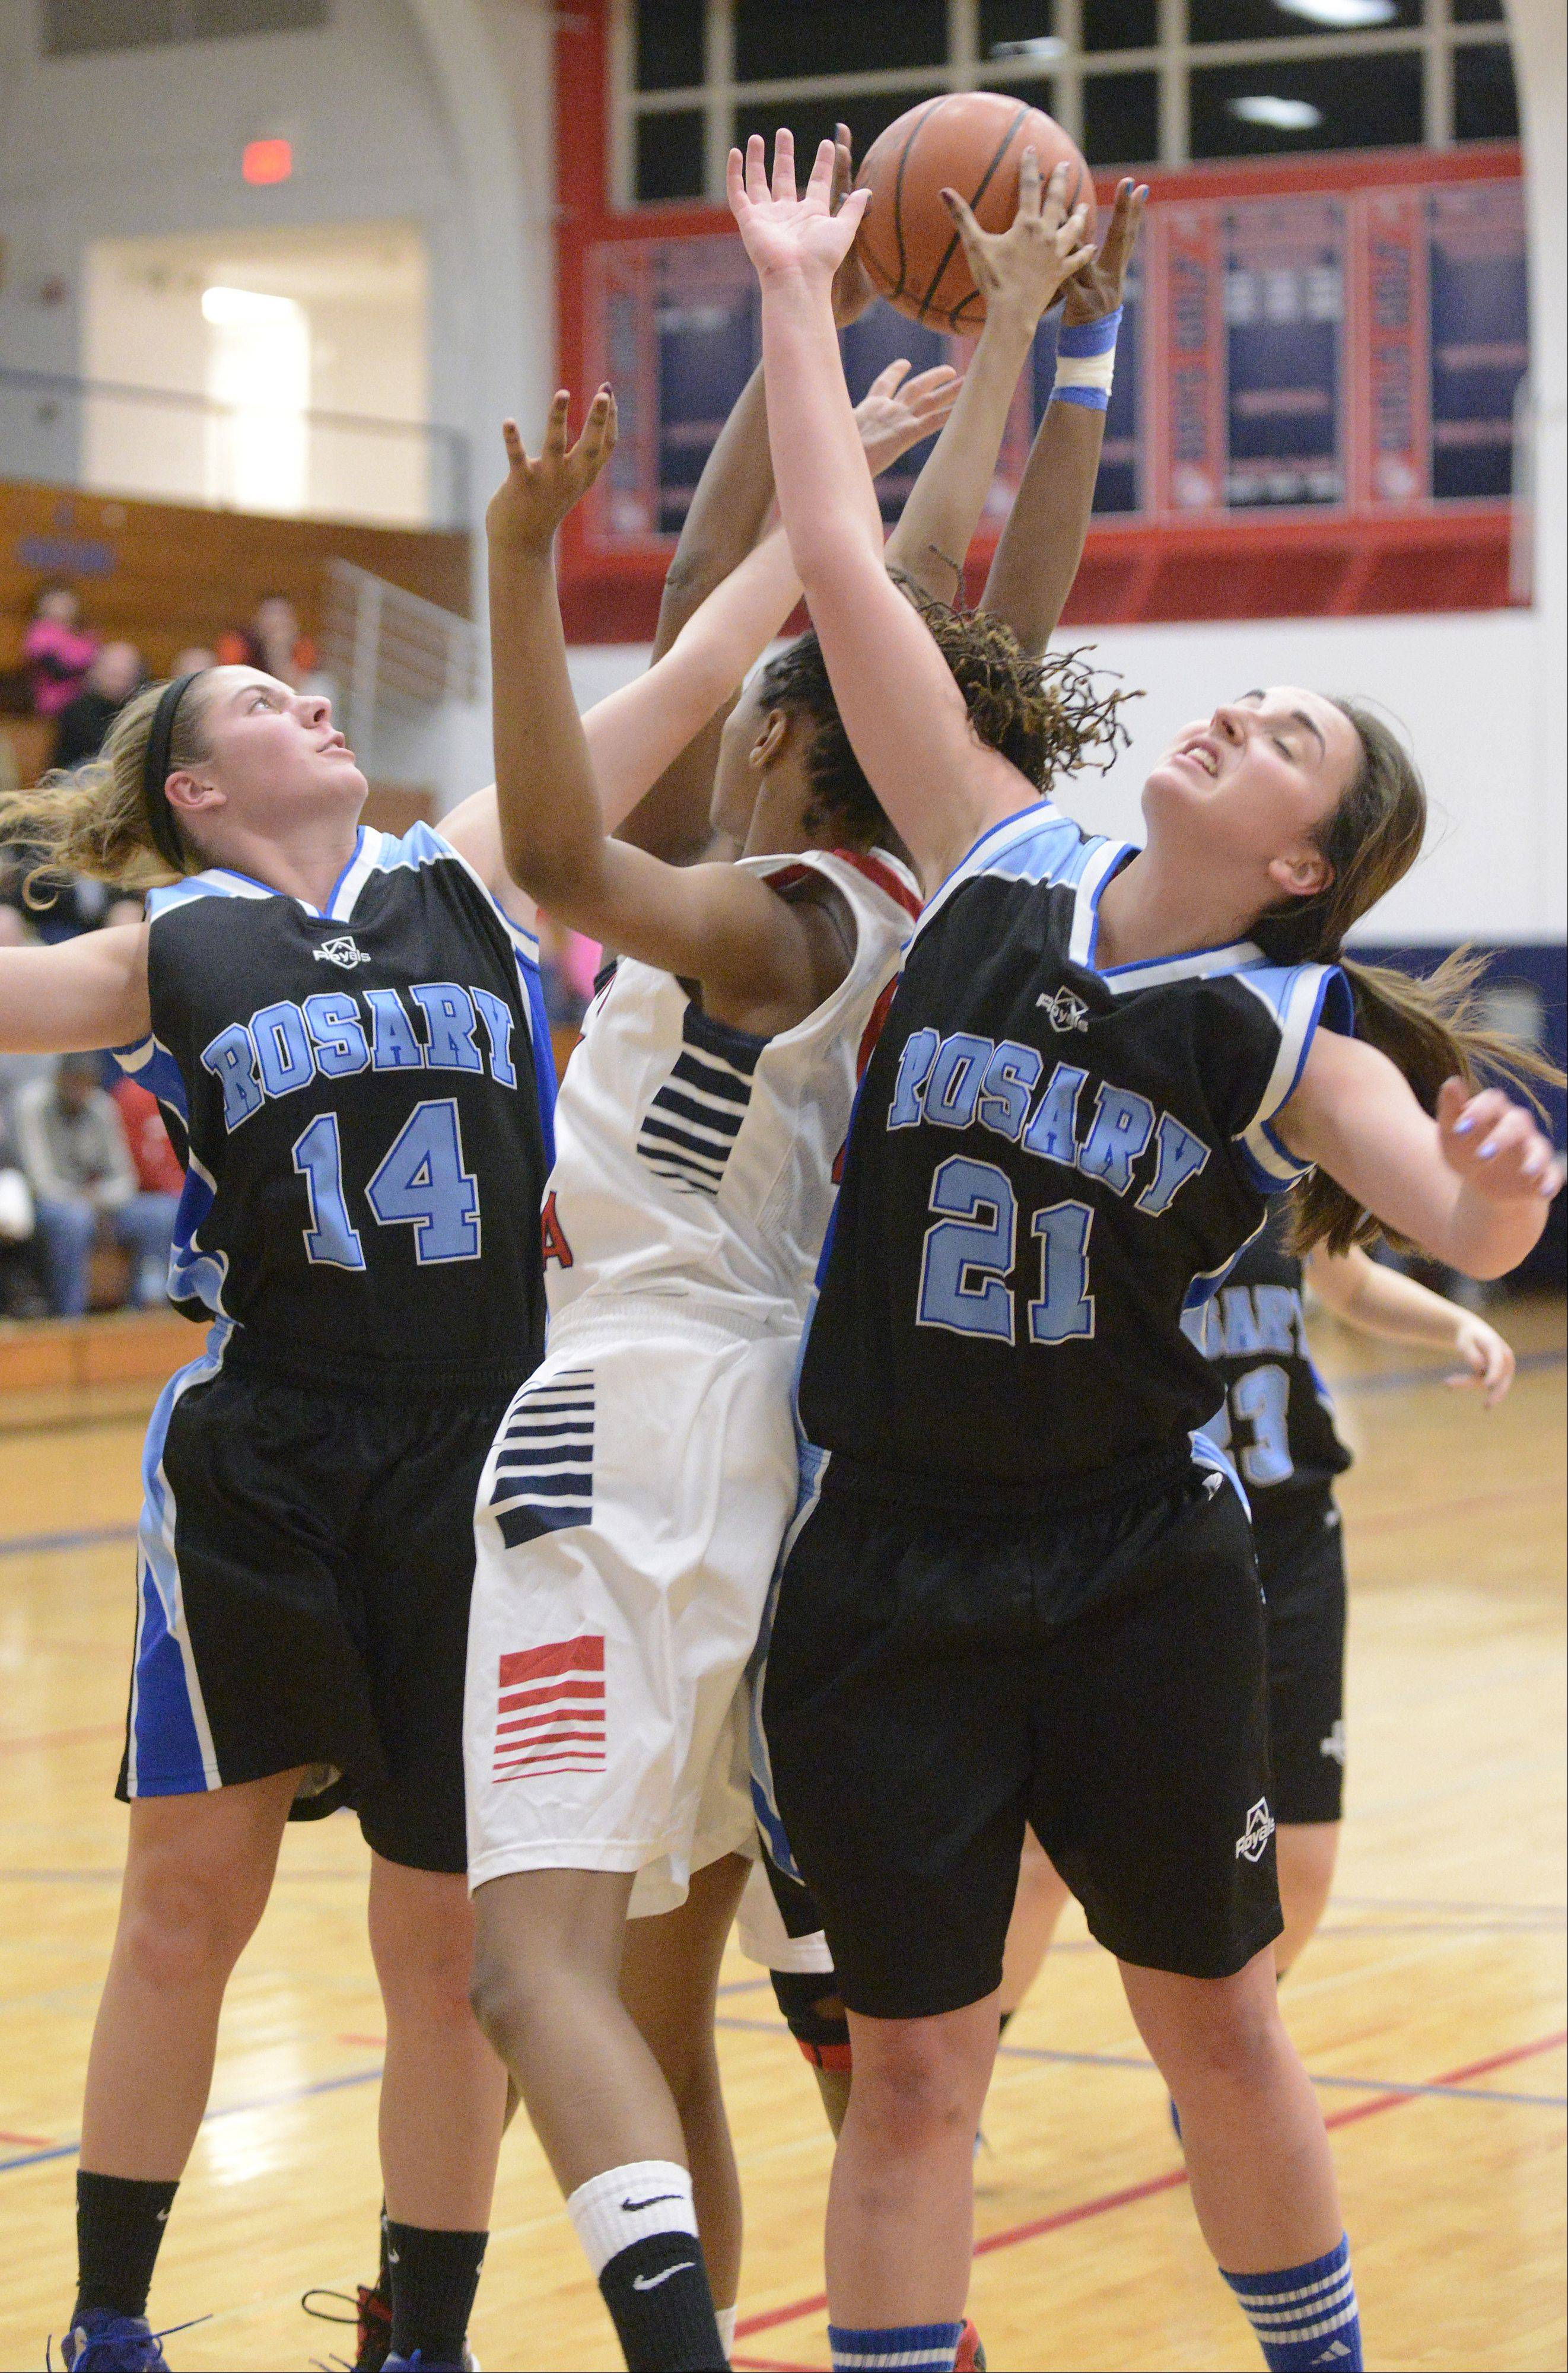 Rosary's Megan Conlin and Adrienne Winkel surround West Aurora's Natalee DeJohnette as they all reach for a Royals rebound in the second quarter on Tuesday, December 3.